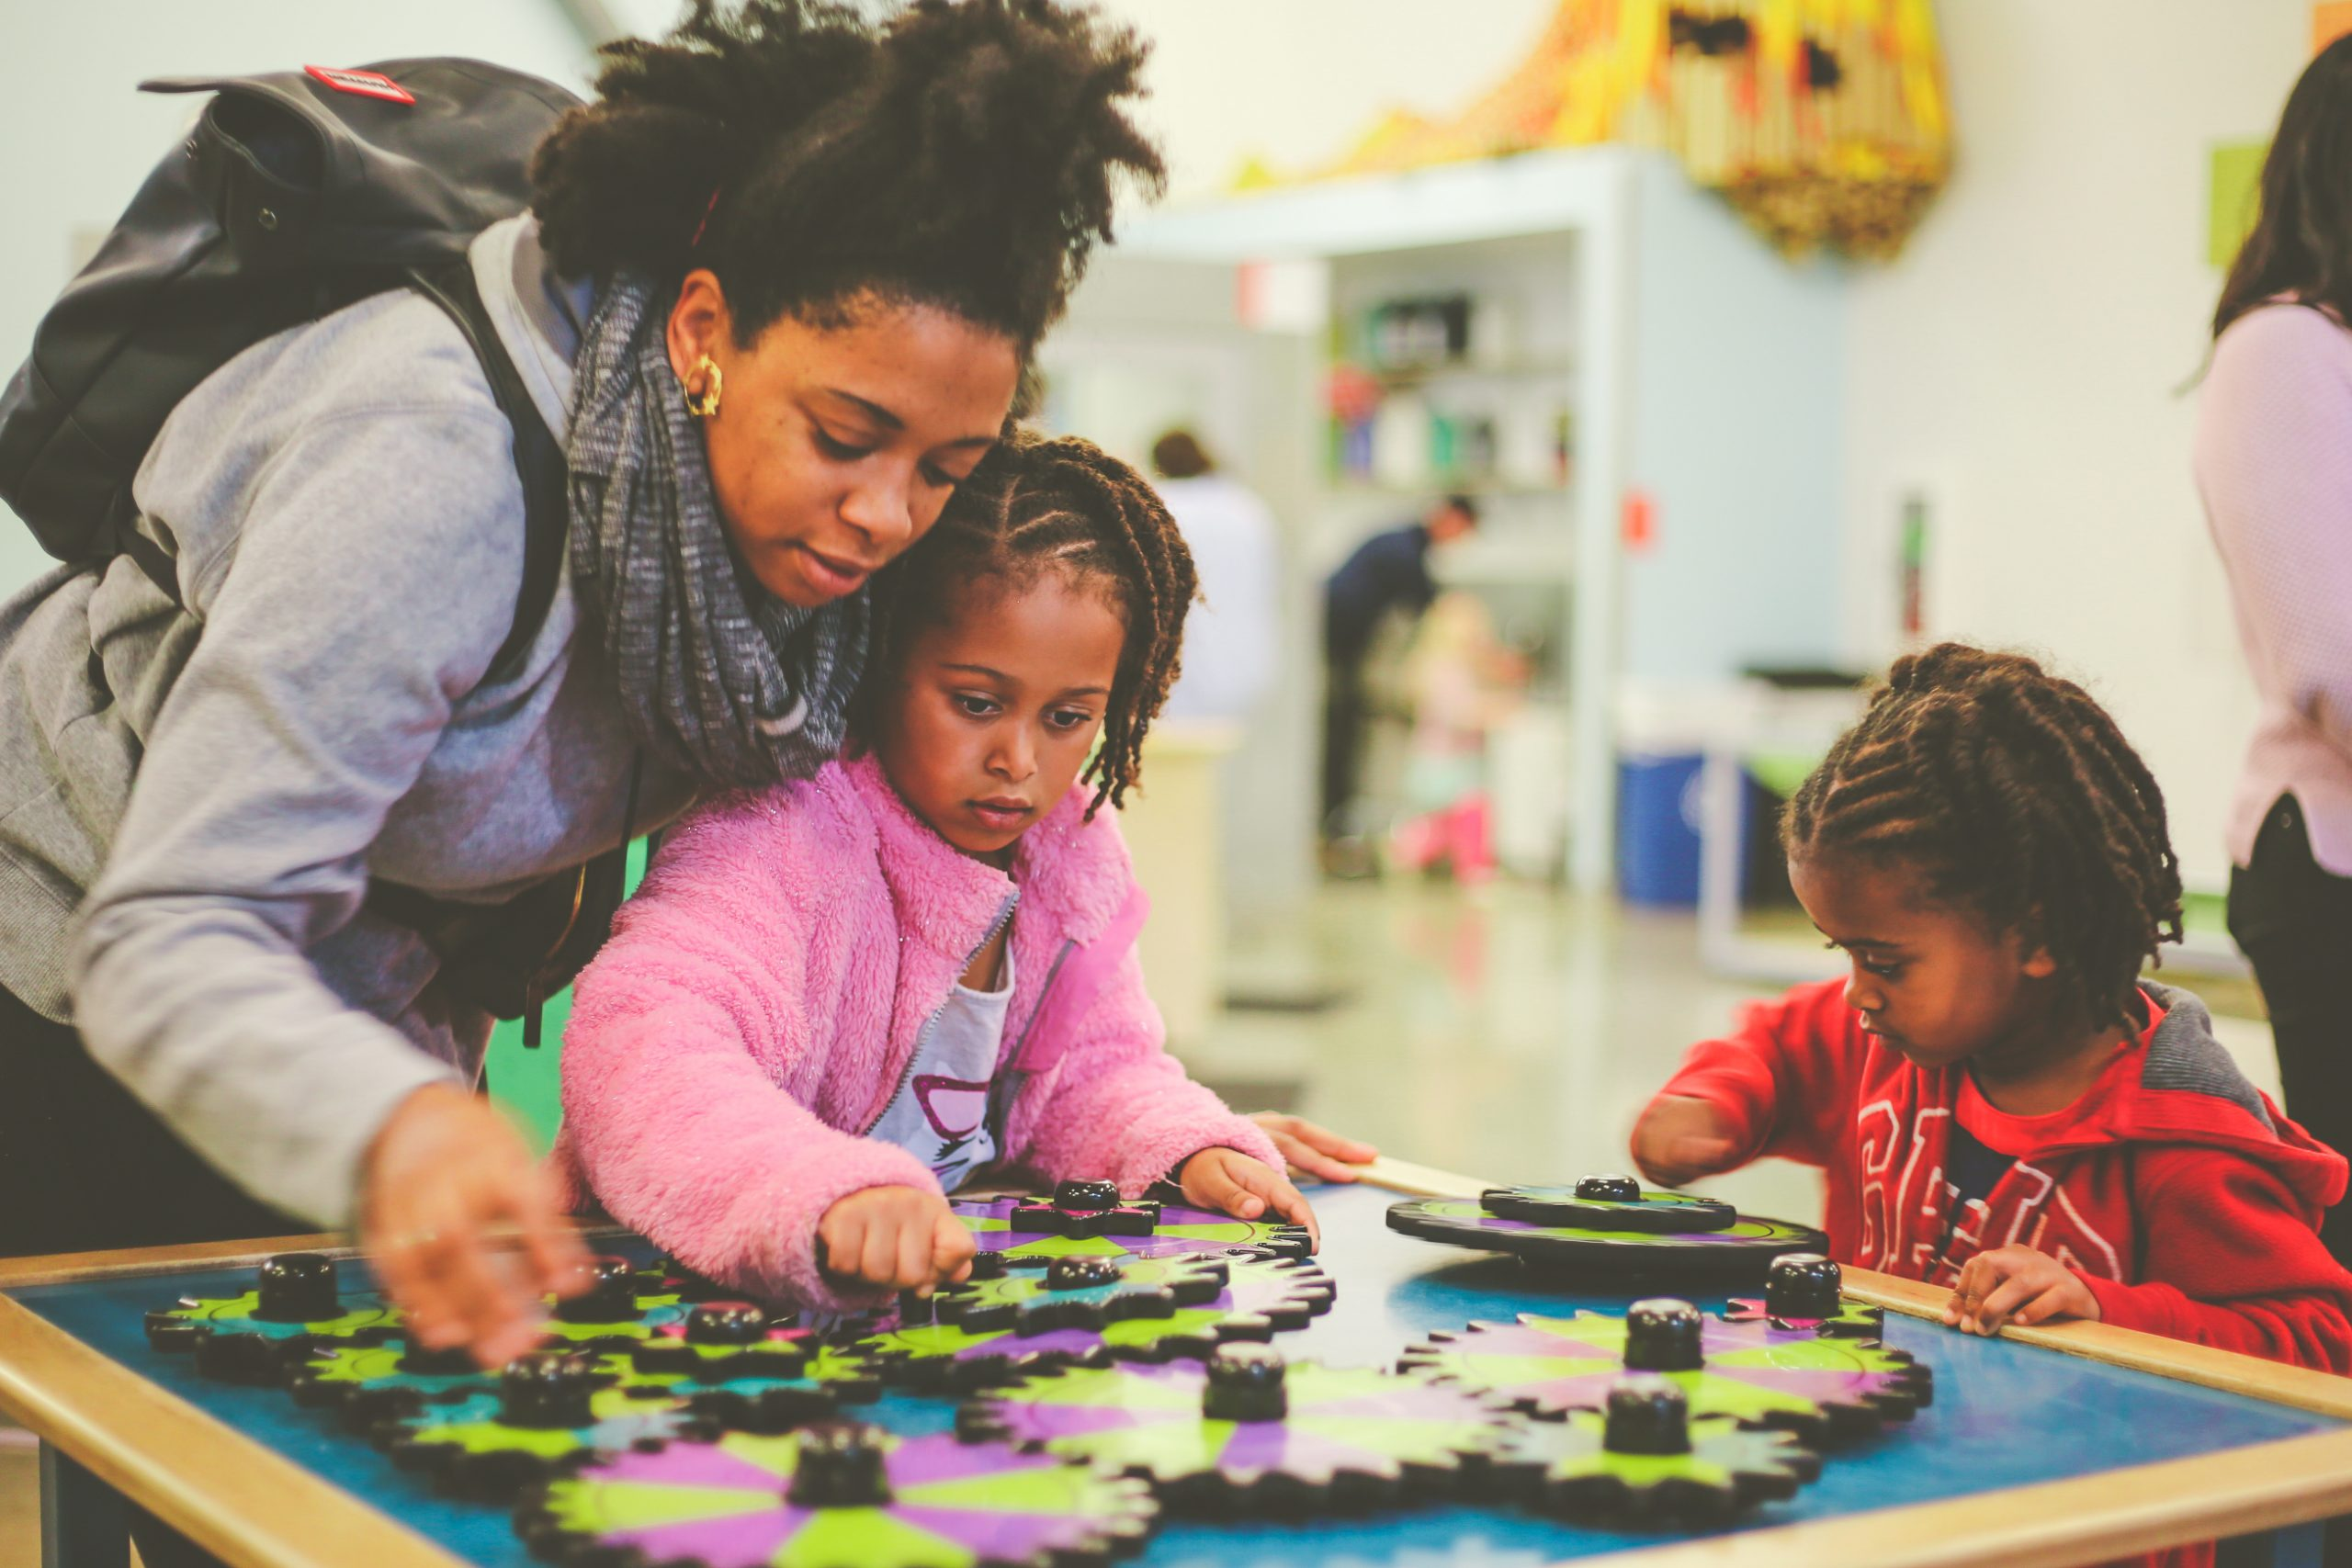 A parent and children playing at a colorful gears exhibit at a museum